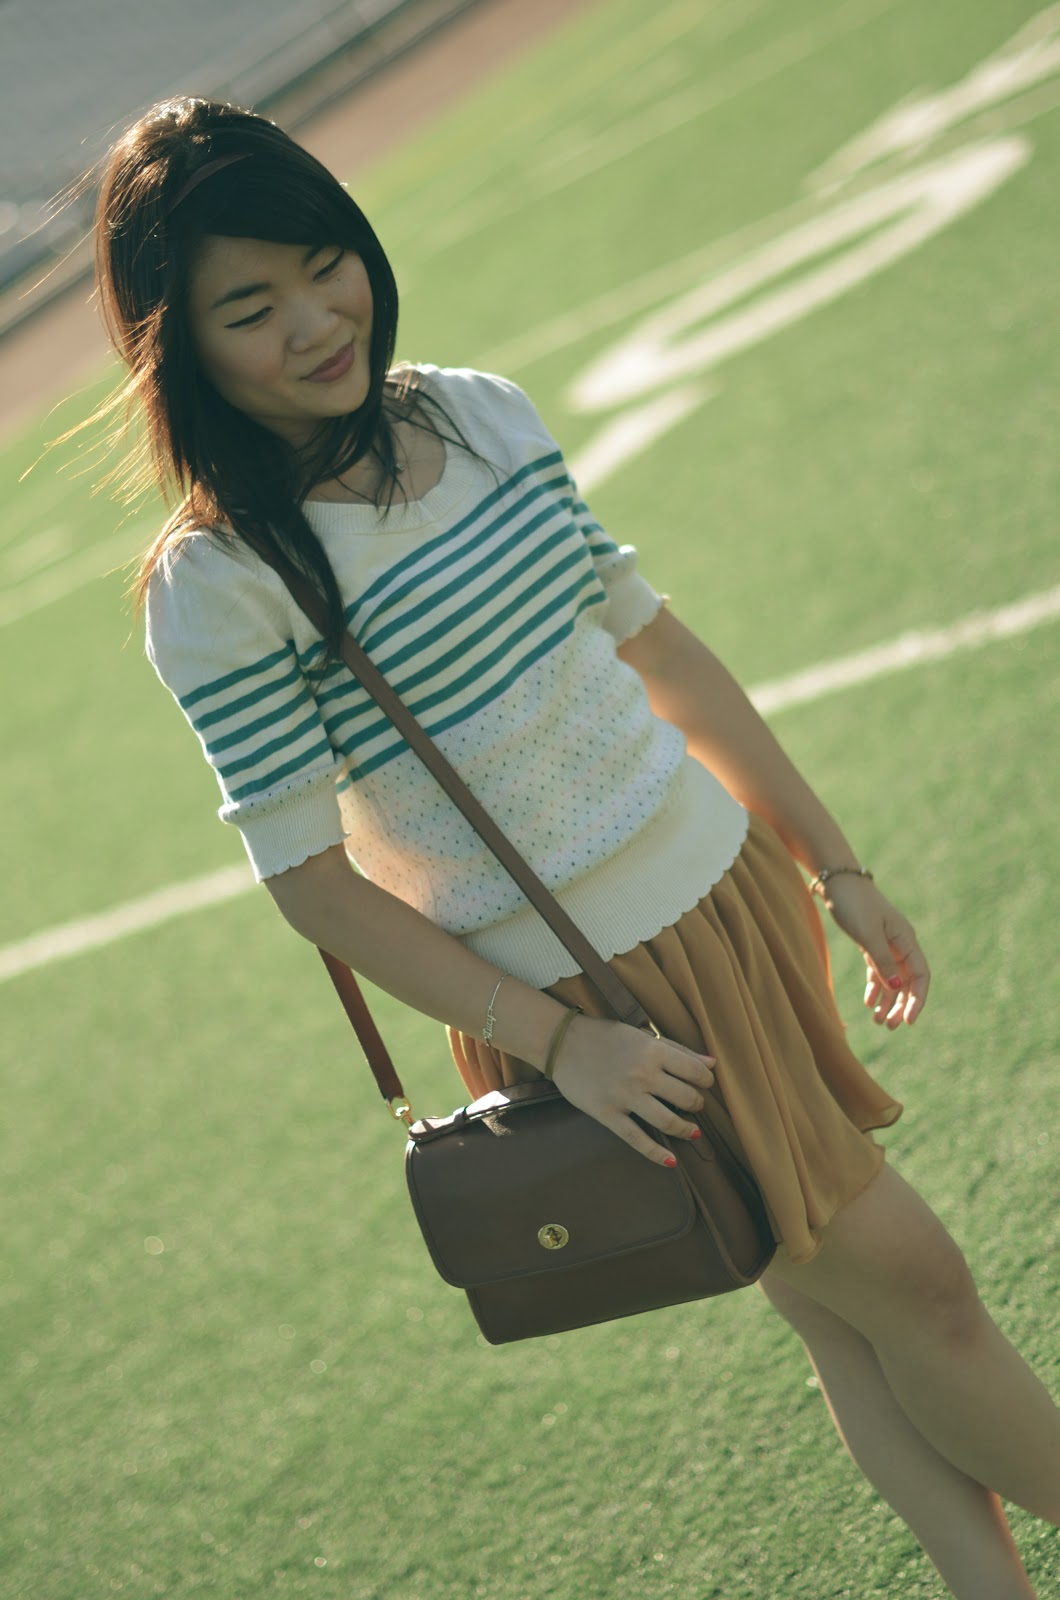 urban outfitters scalloped striped sweater, forever 21 mustard chiffon skirt, forever 21 mustard skirt, coach classic court bag, coach classic court bag british tan, asos floral cap toe oxfords